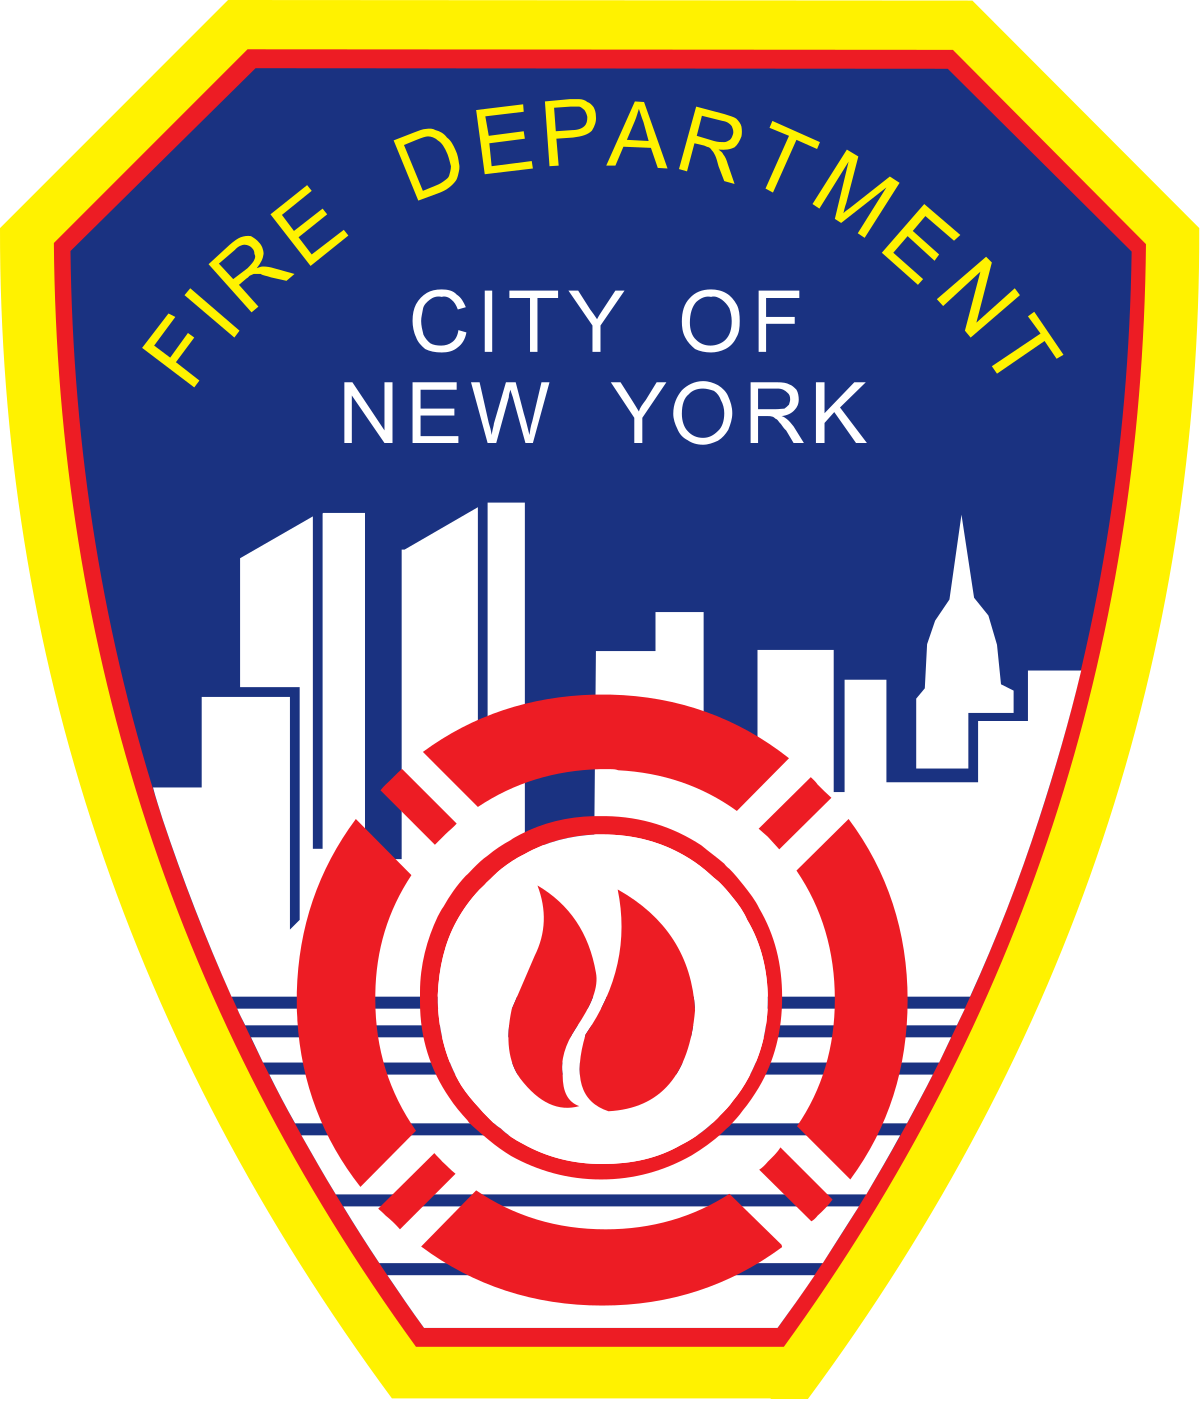 Emt svg fire rescue. New york city department